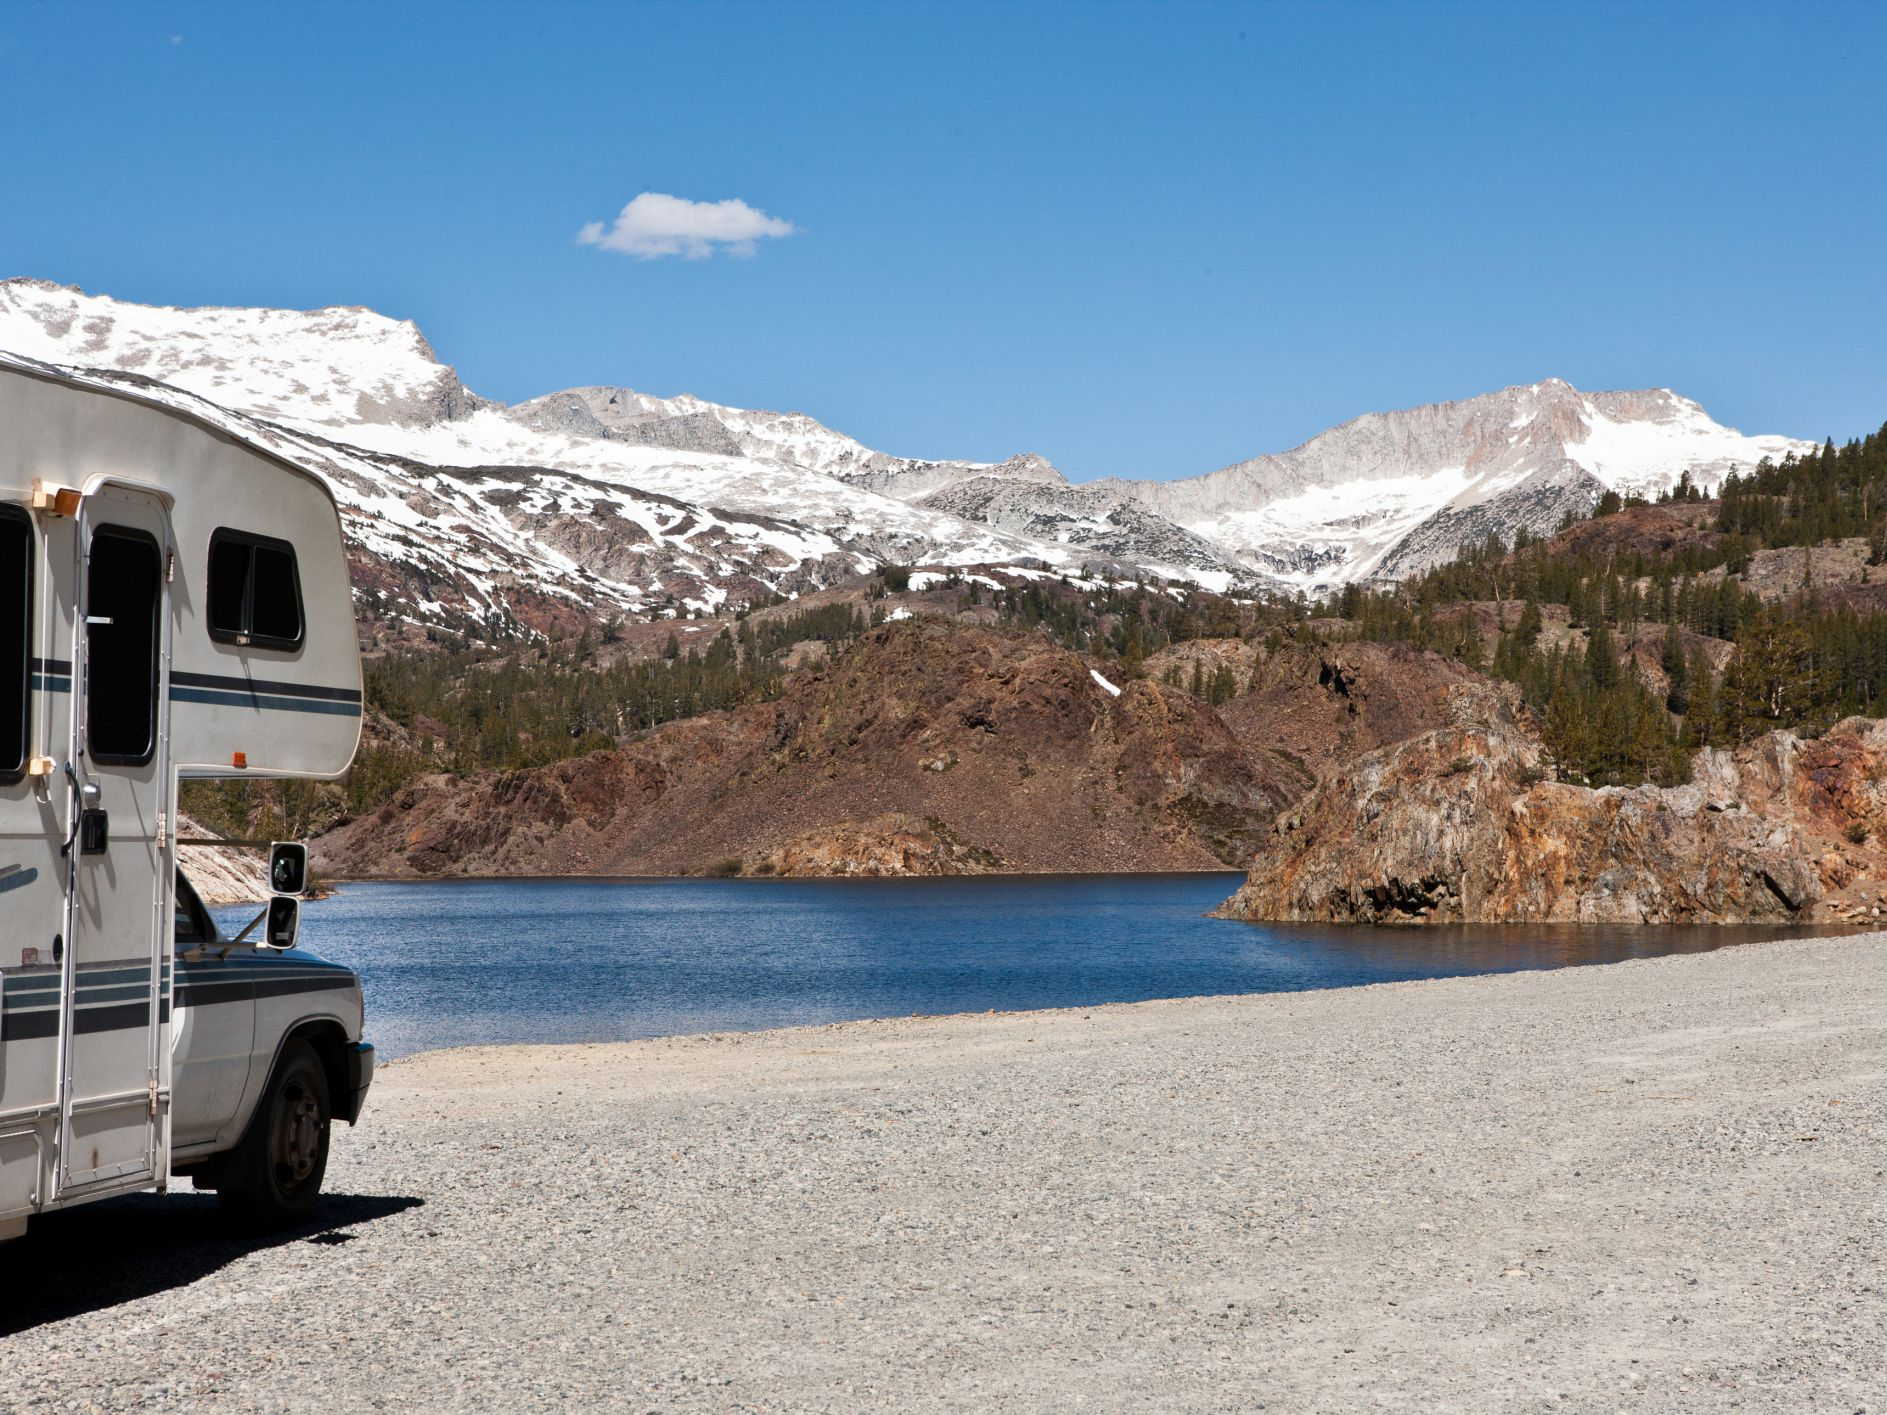 Yellowstone National Park Rv Parks >> 3 National Parks That Offer Rv Hookups For Travelers